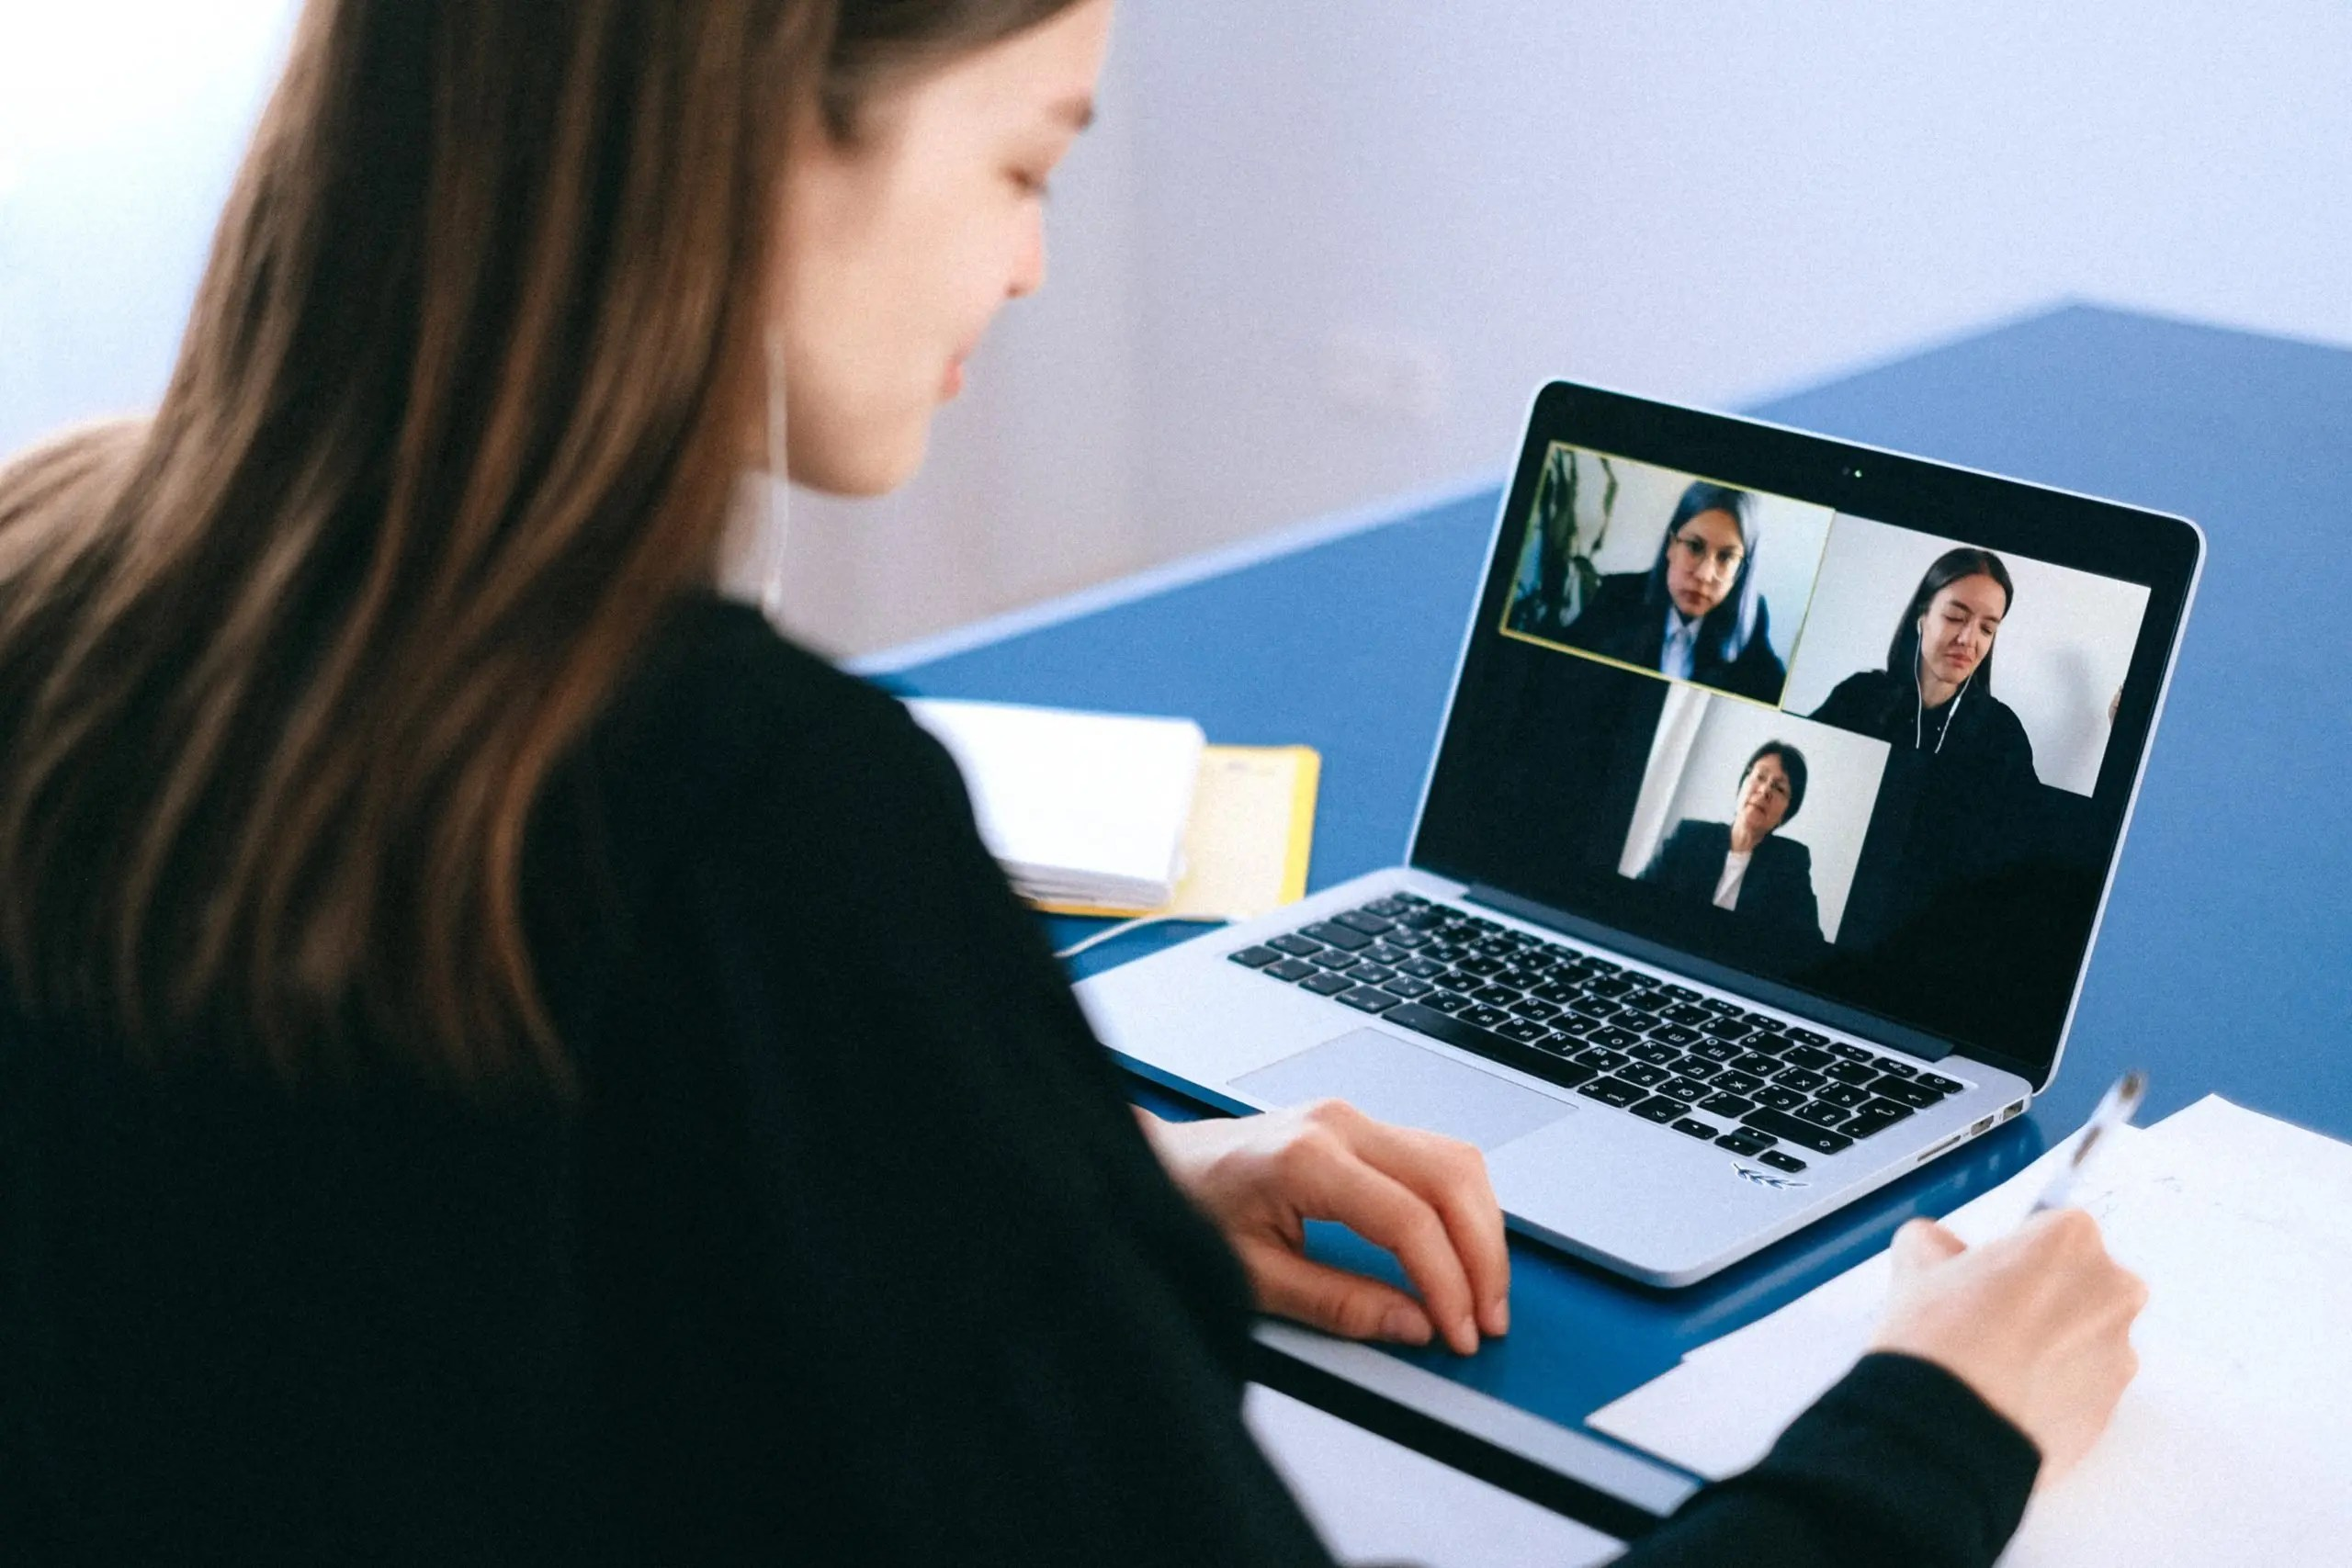 People participating in a converence by video